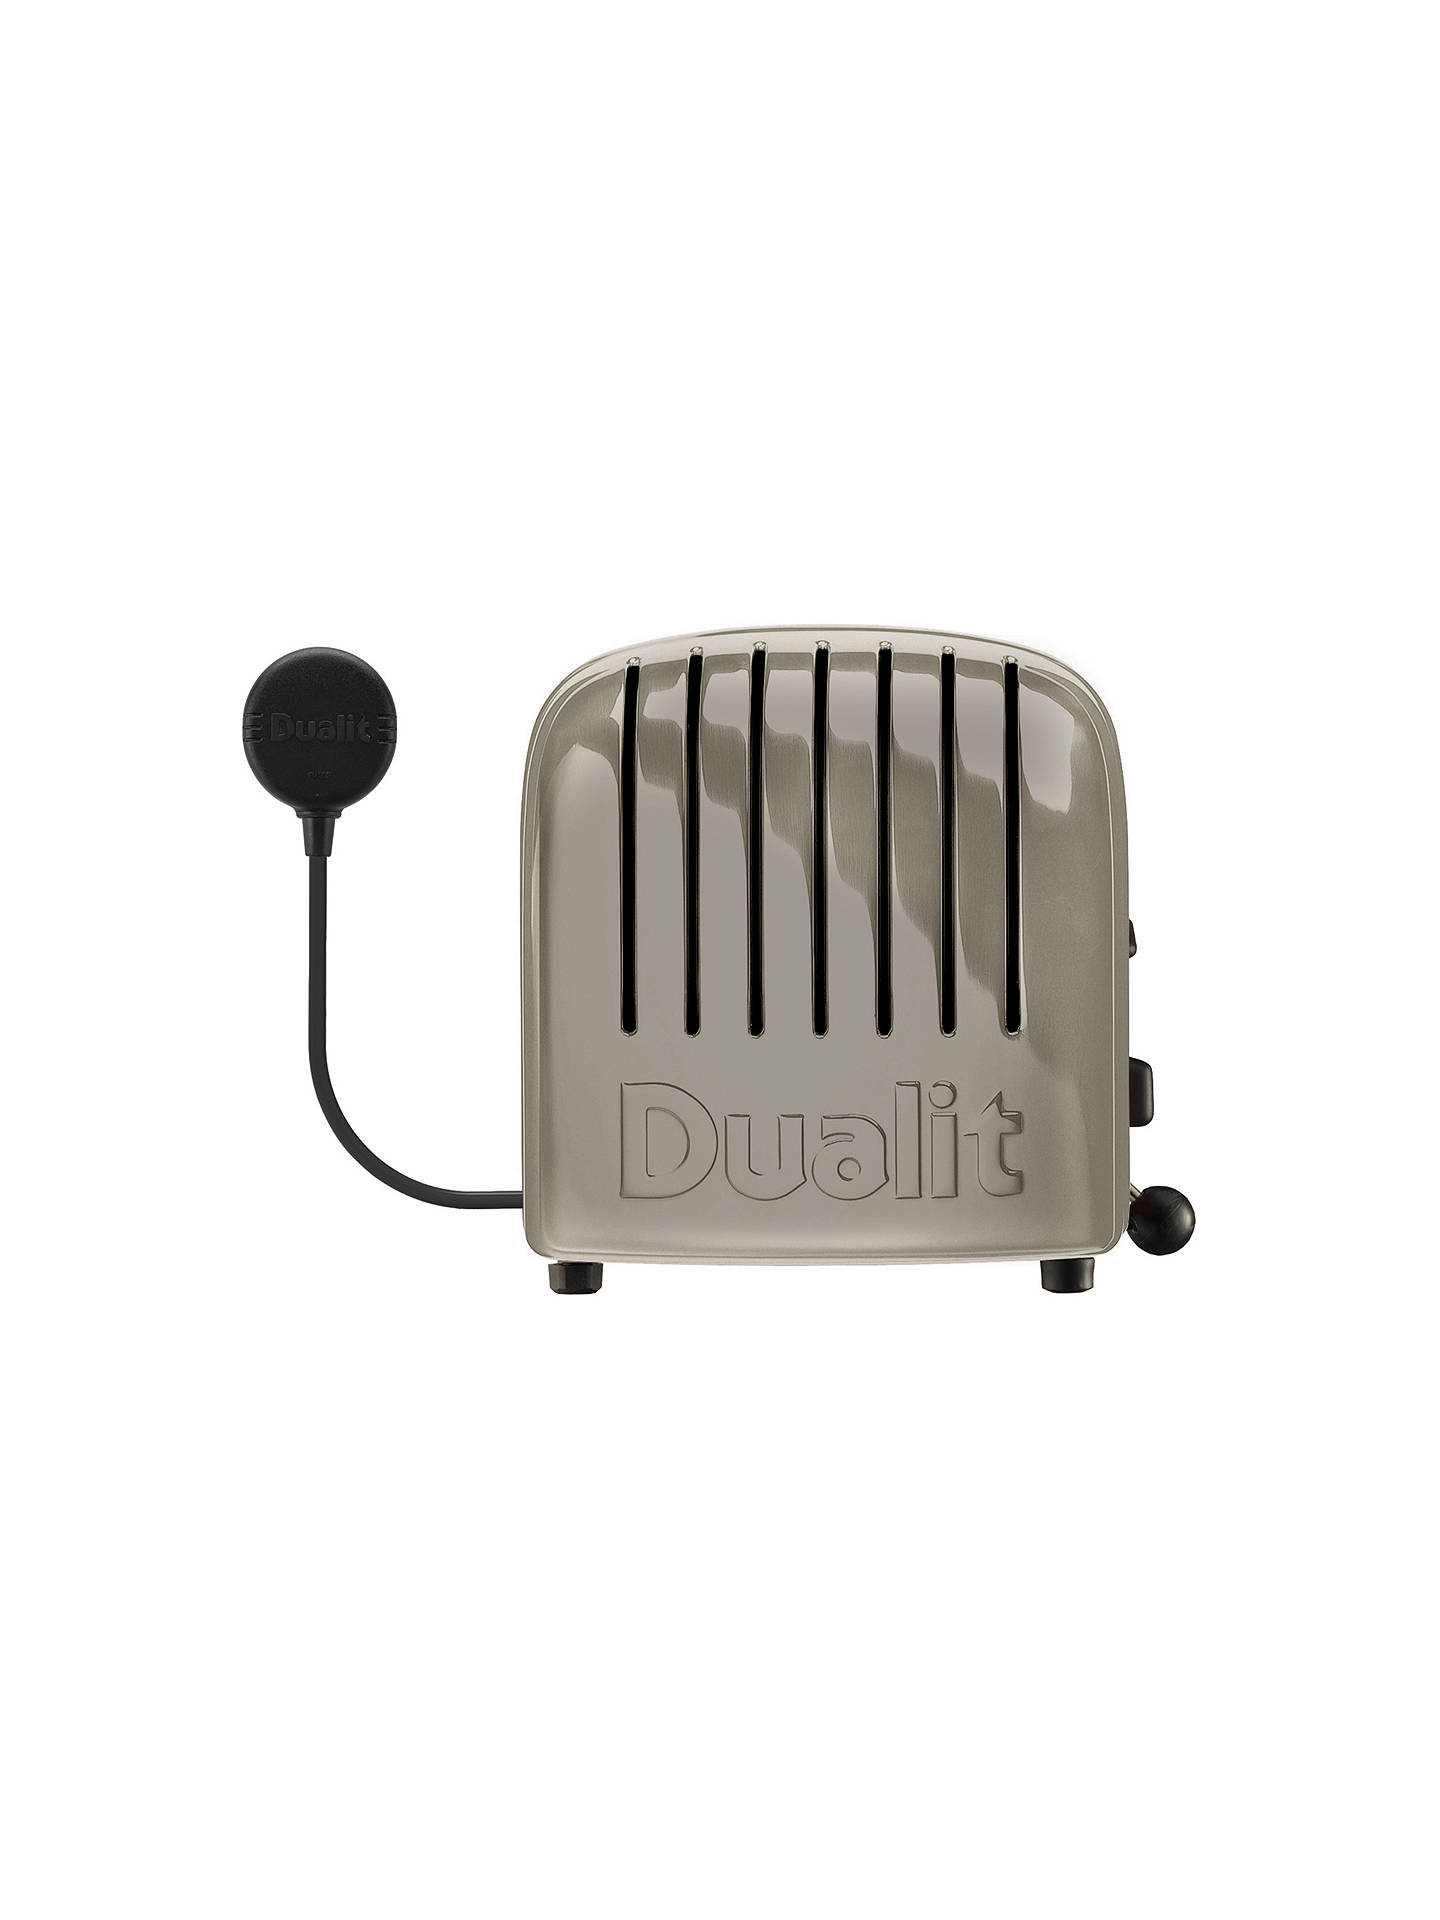 Buy Dualit NewGen 4-Slice Toaster, Shadow Online at johnlewis.com